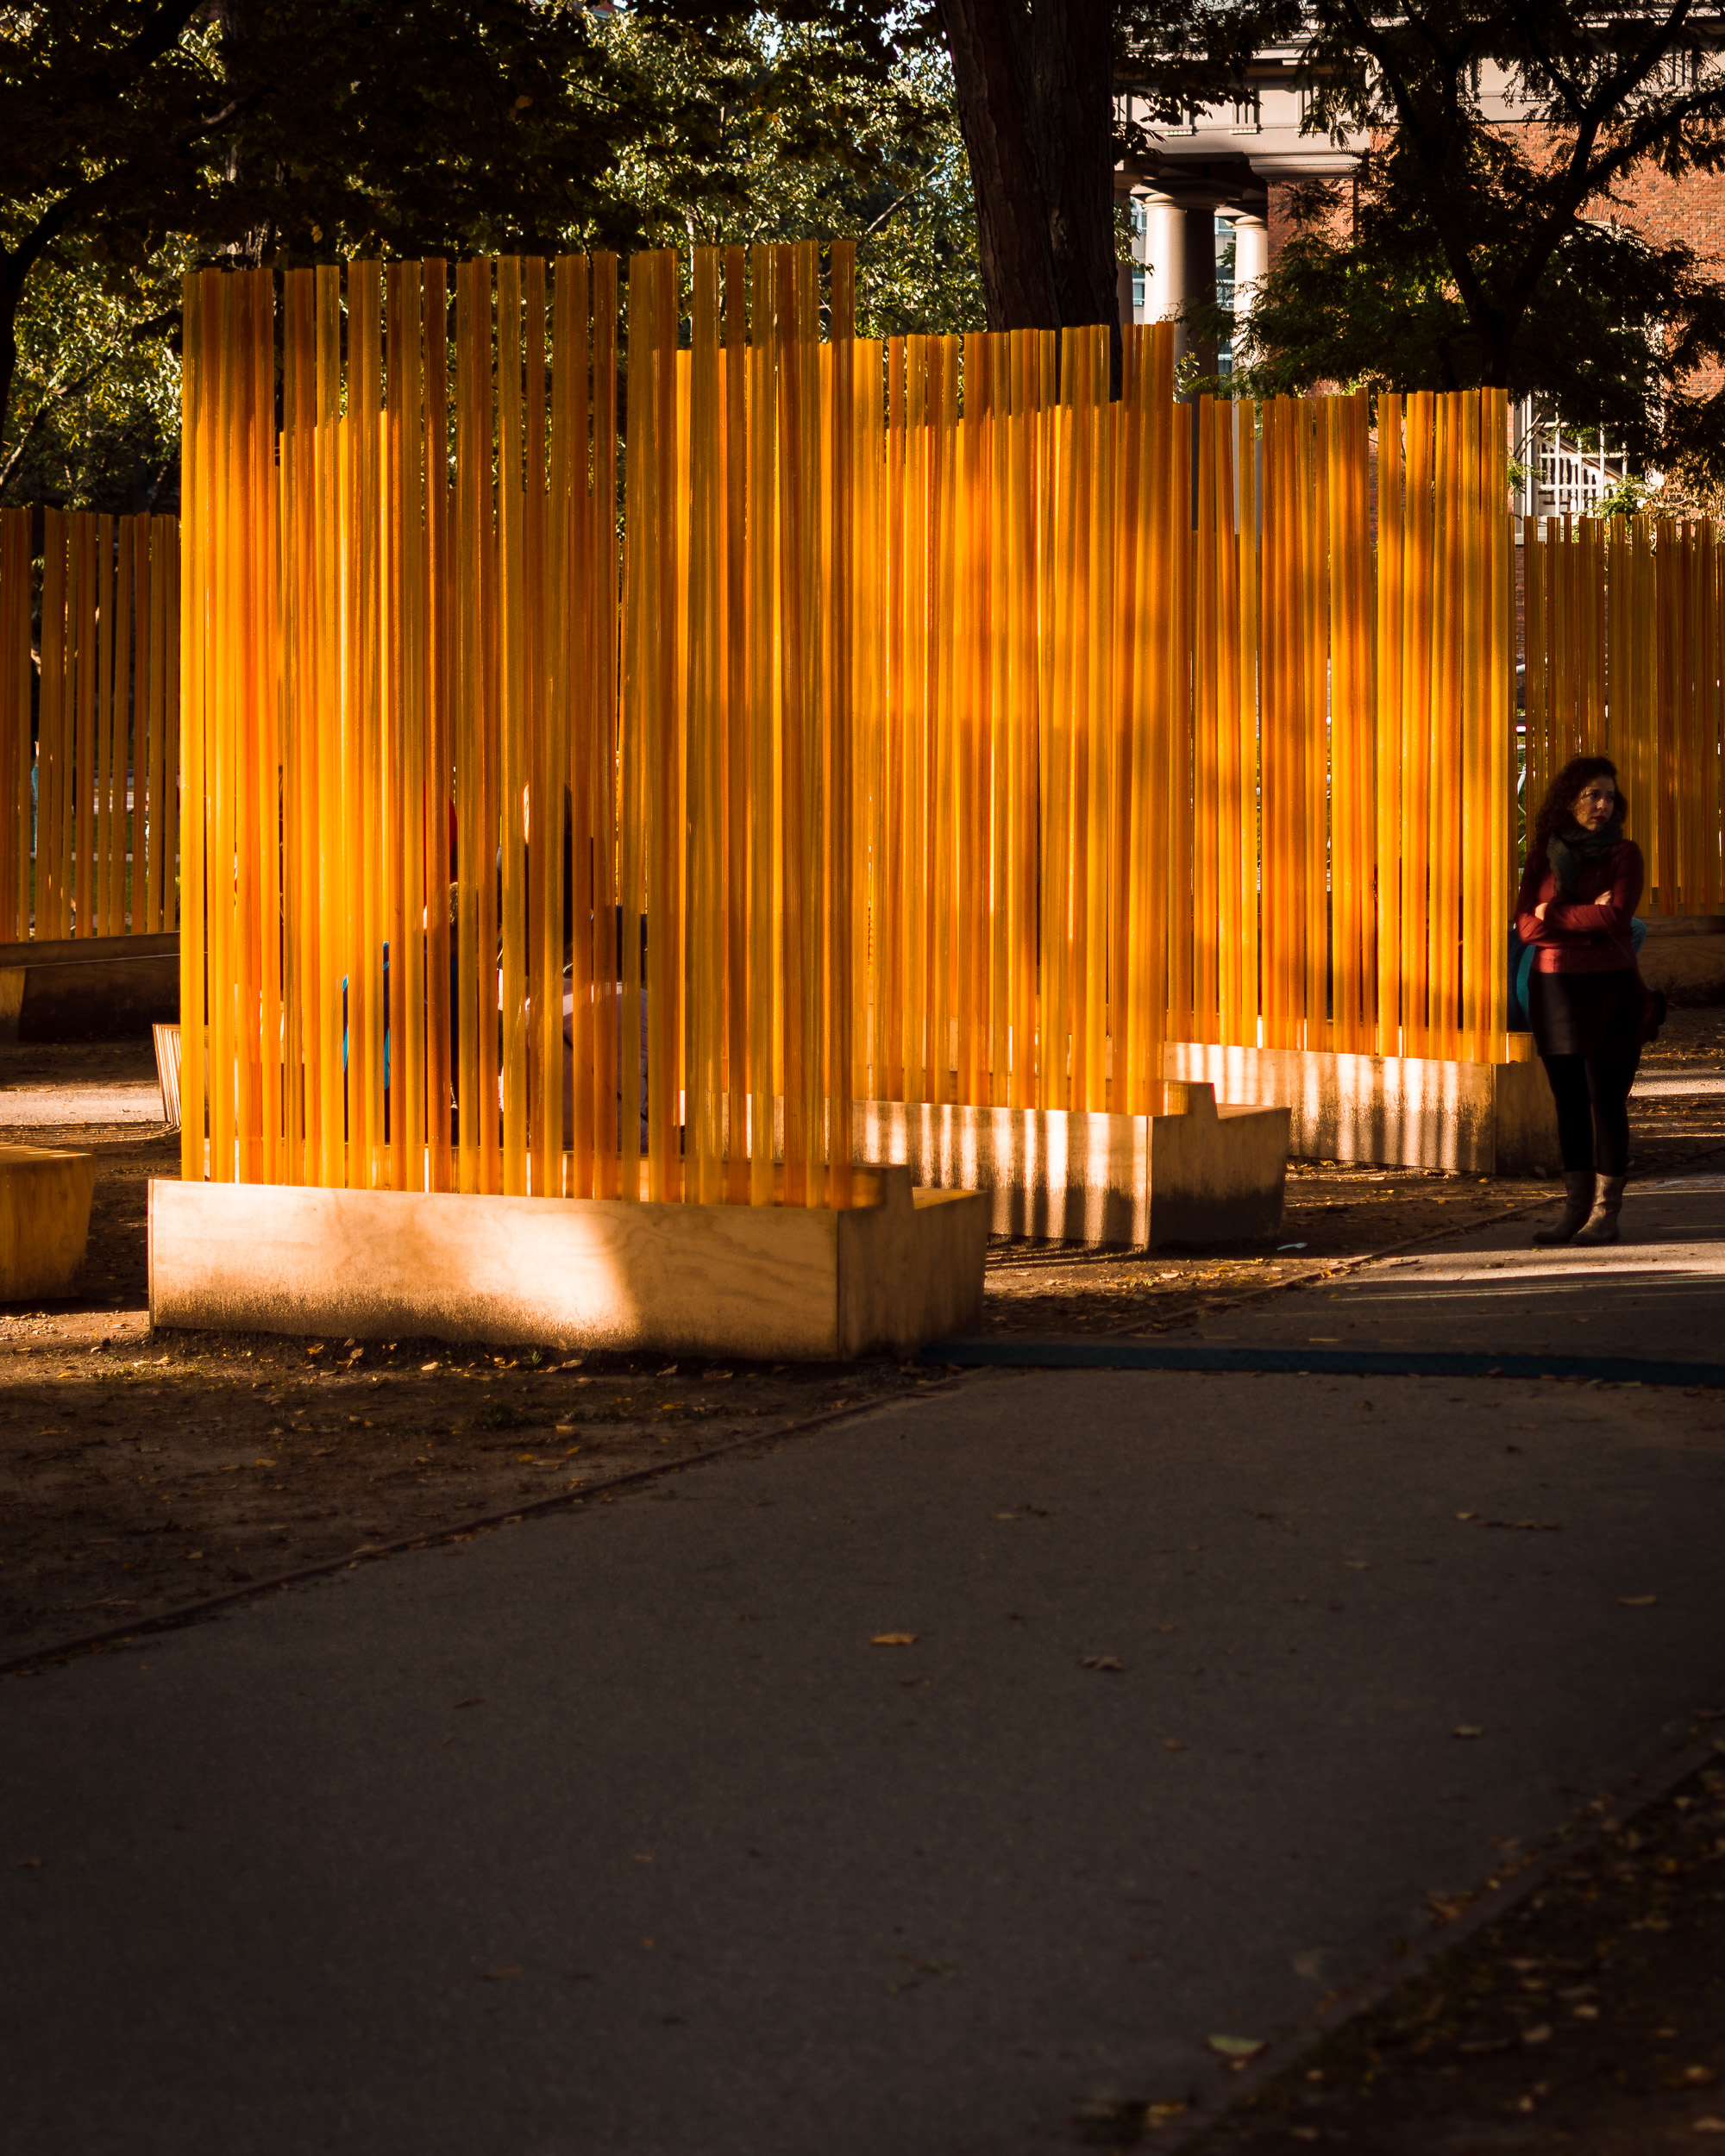 Autumn (... Nothing Personal) is a public sculpture by the artist Teresita Fernández